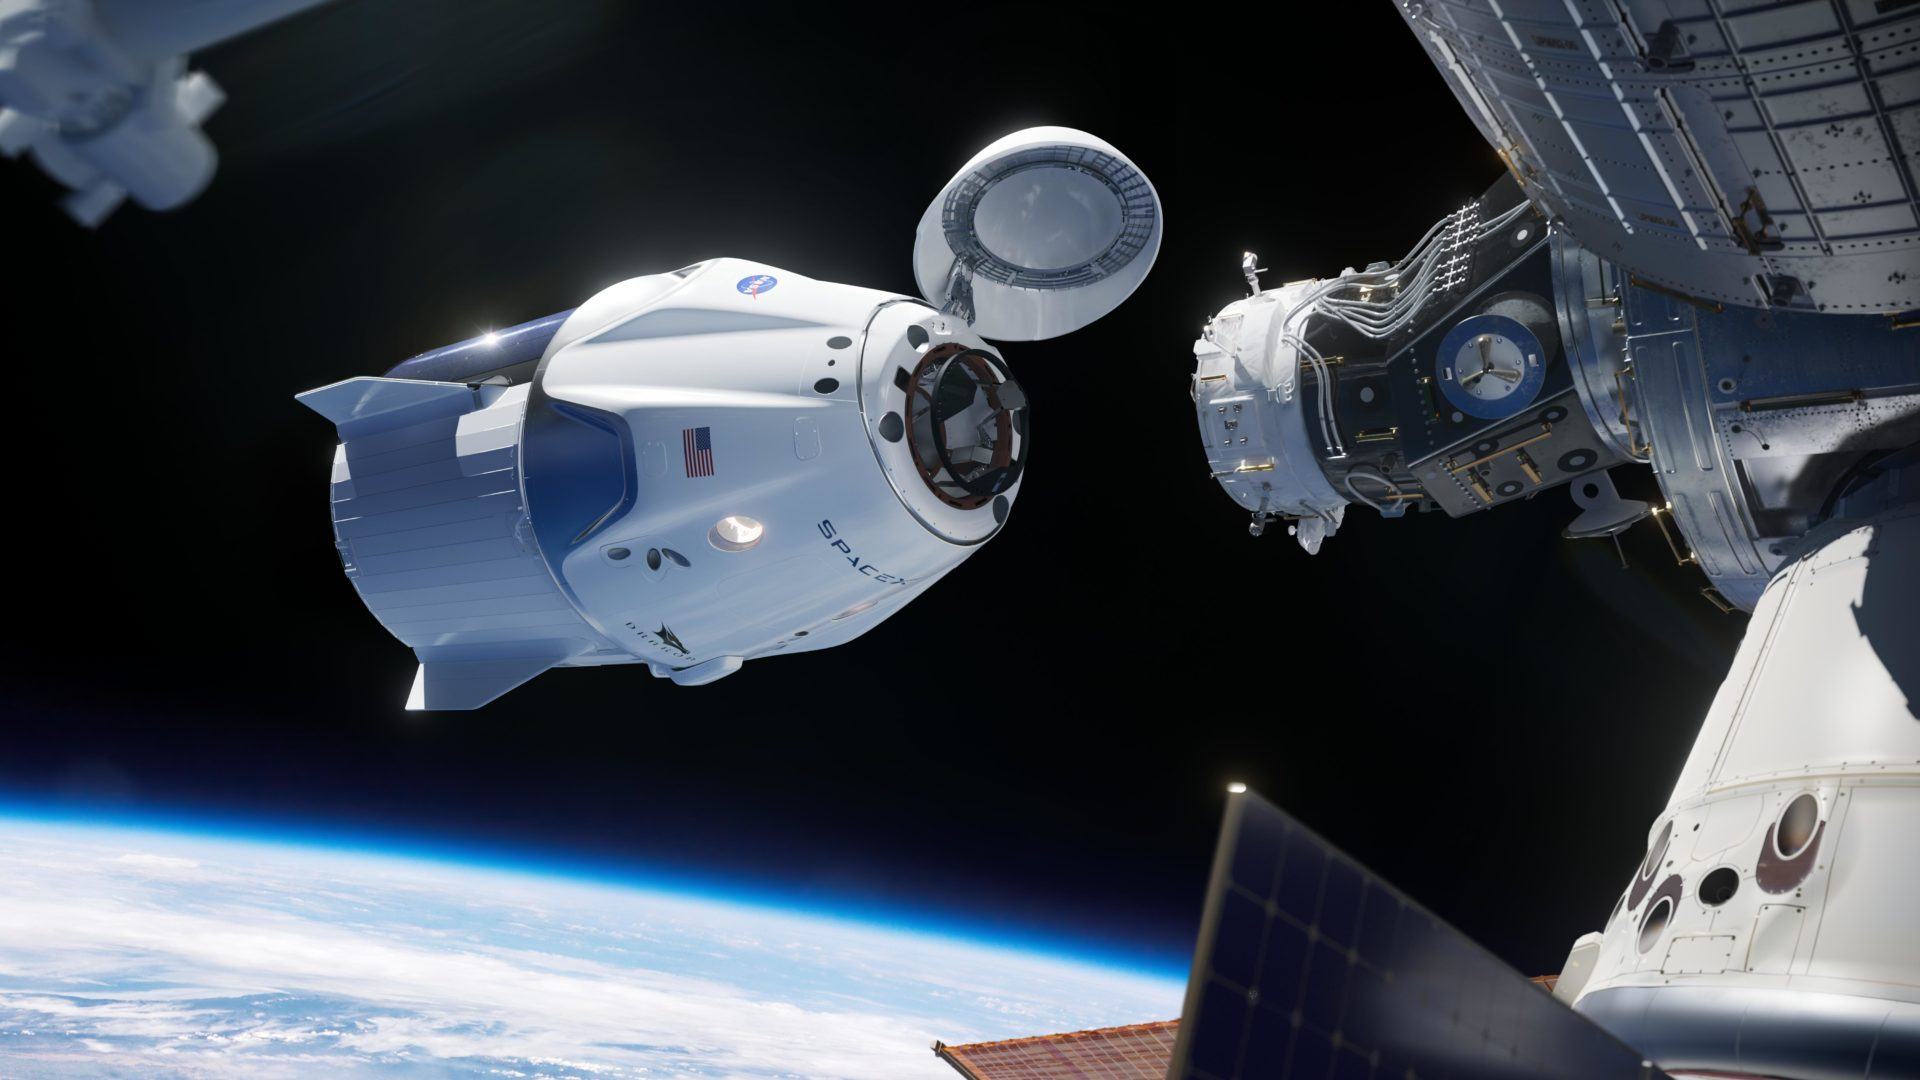 The Dragon has landed. What's next for the NASA-SpaceX partnership?